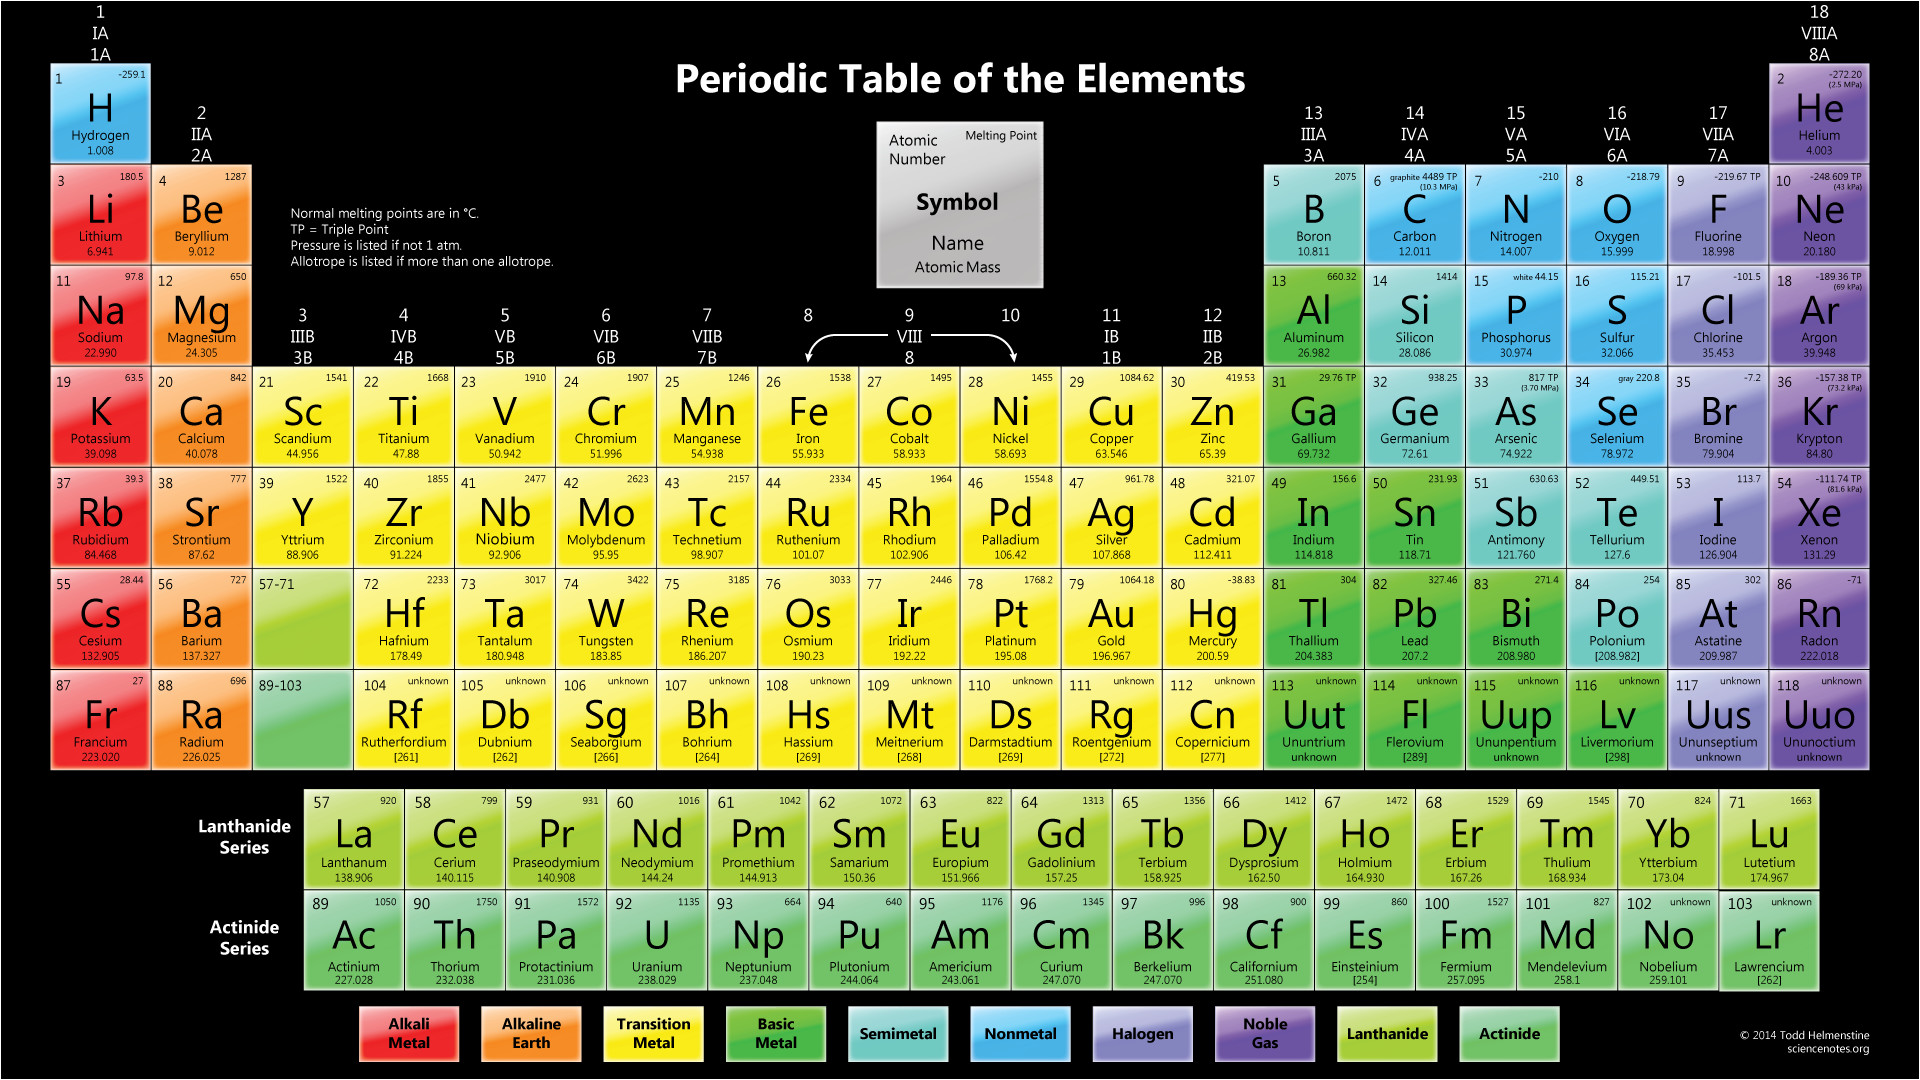 Periodic table of elements background choice image periodic periodic table iphone background choice image periodic table images periodic table of elements desktop wallpaper 1920x1080 gamestrikefo Image collections